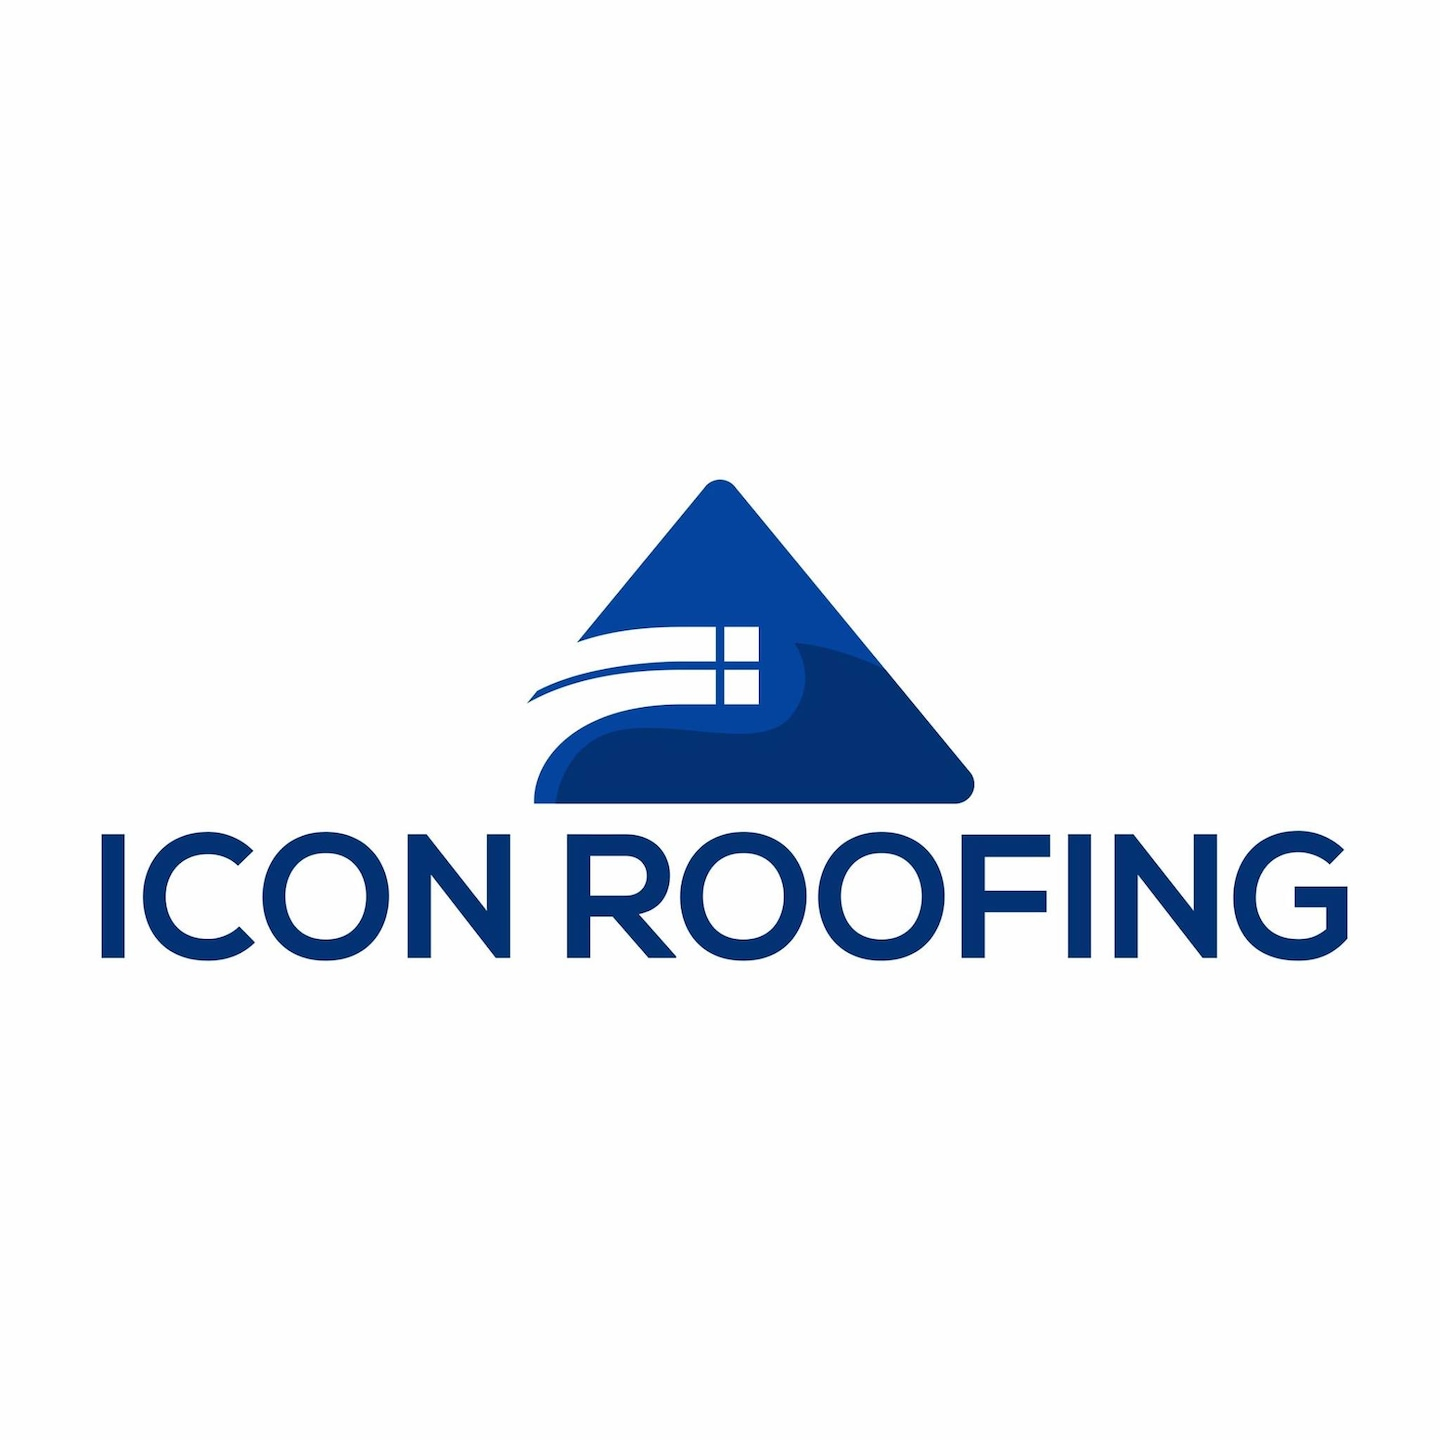 ICON ROOFING LLC